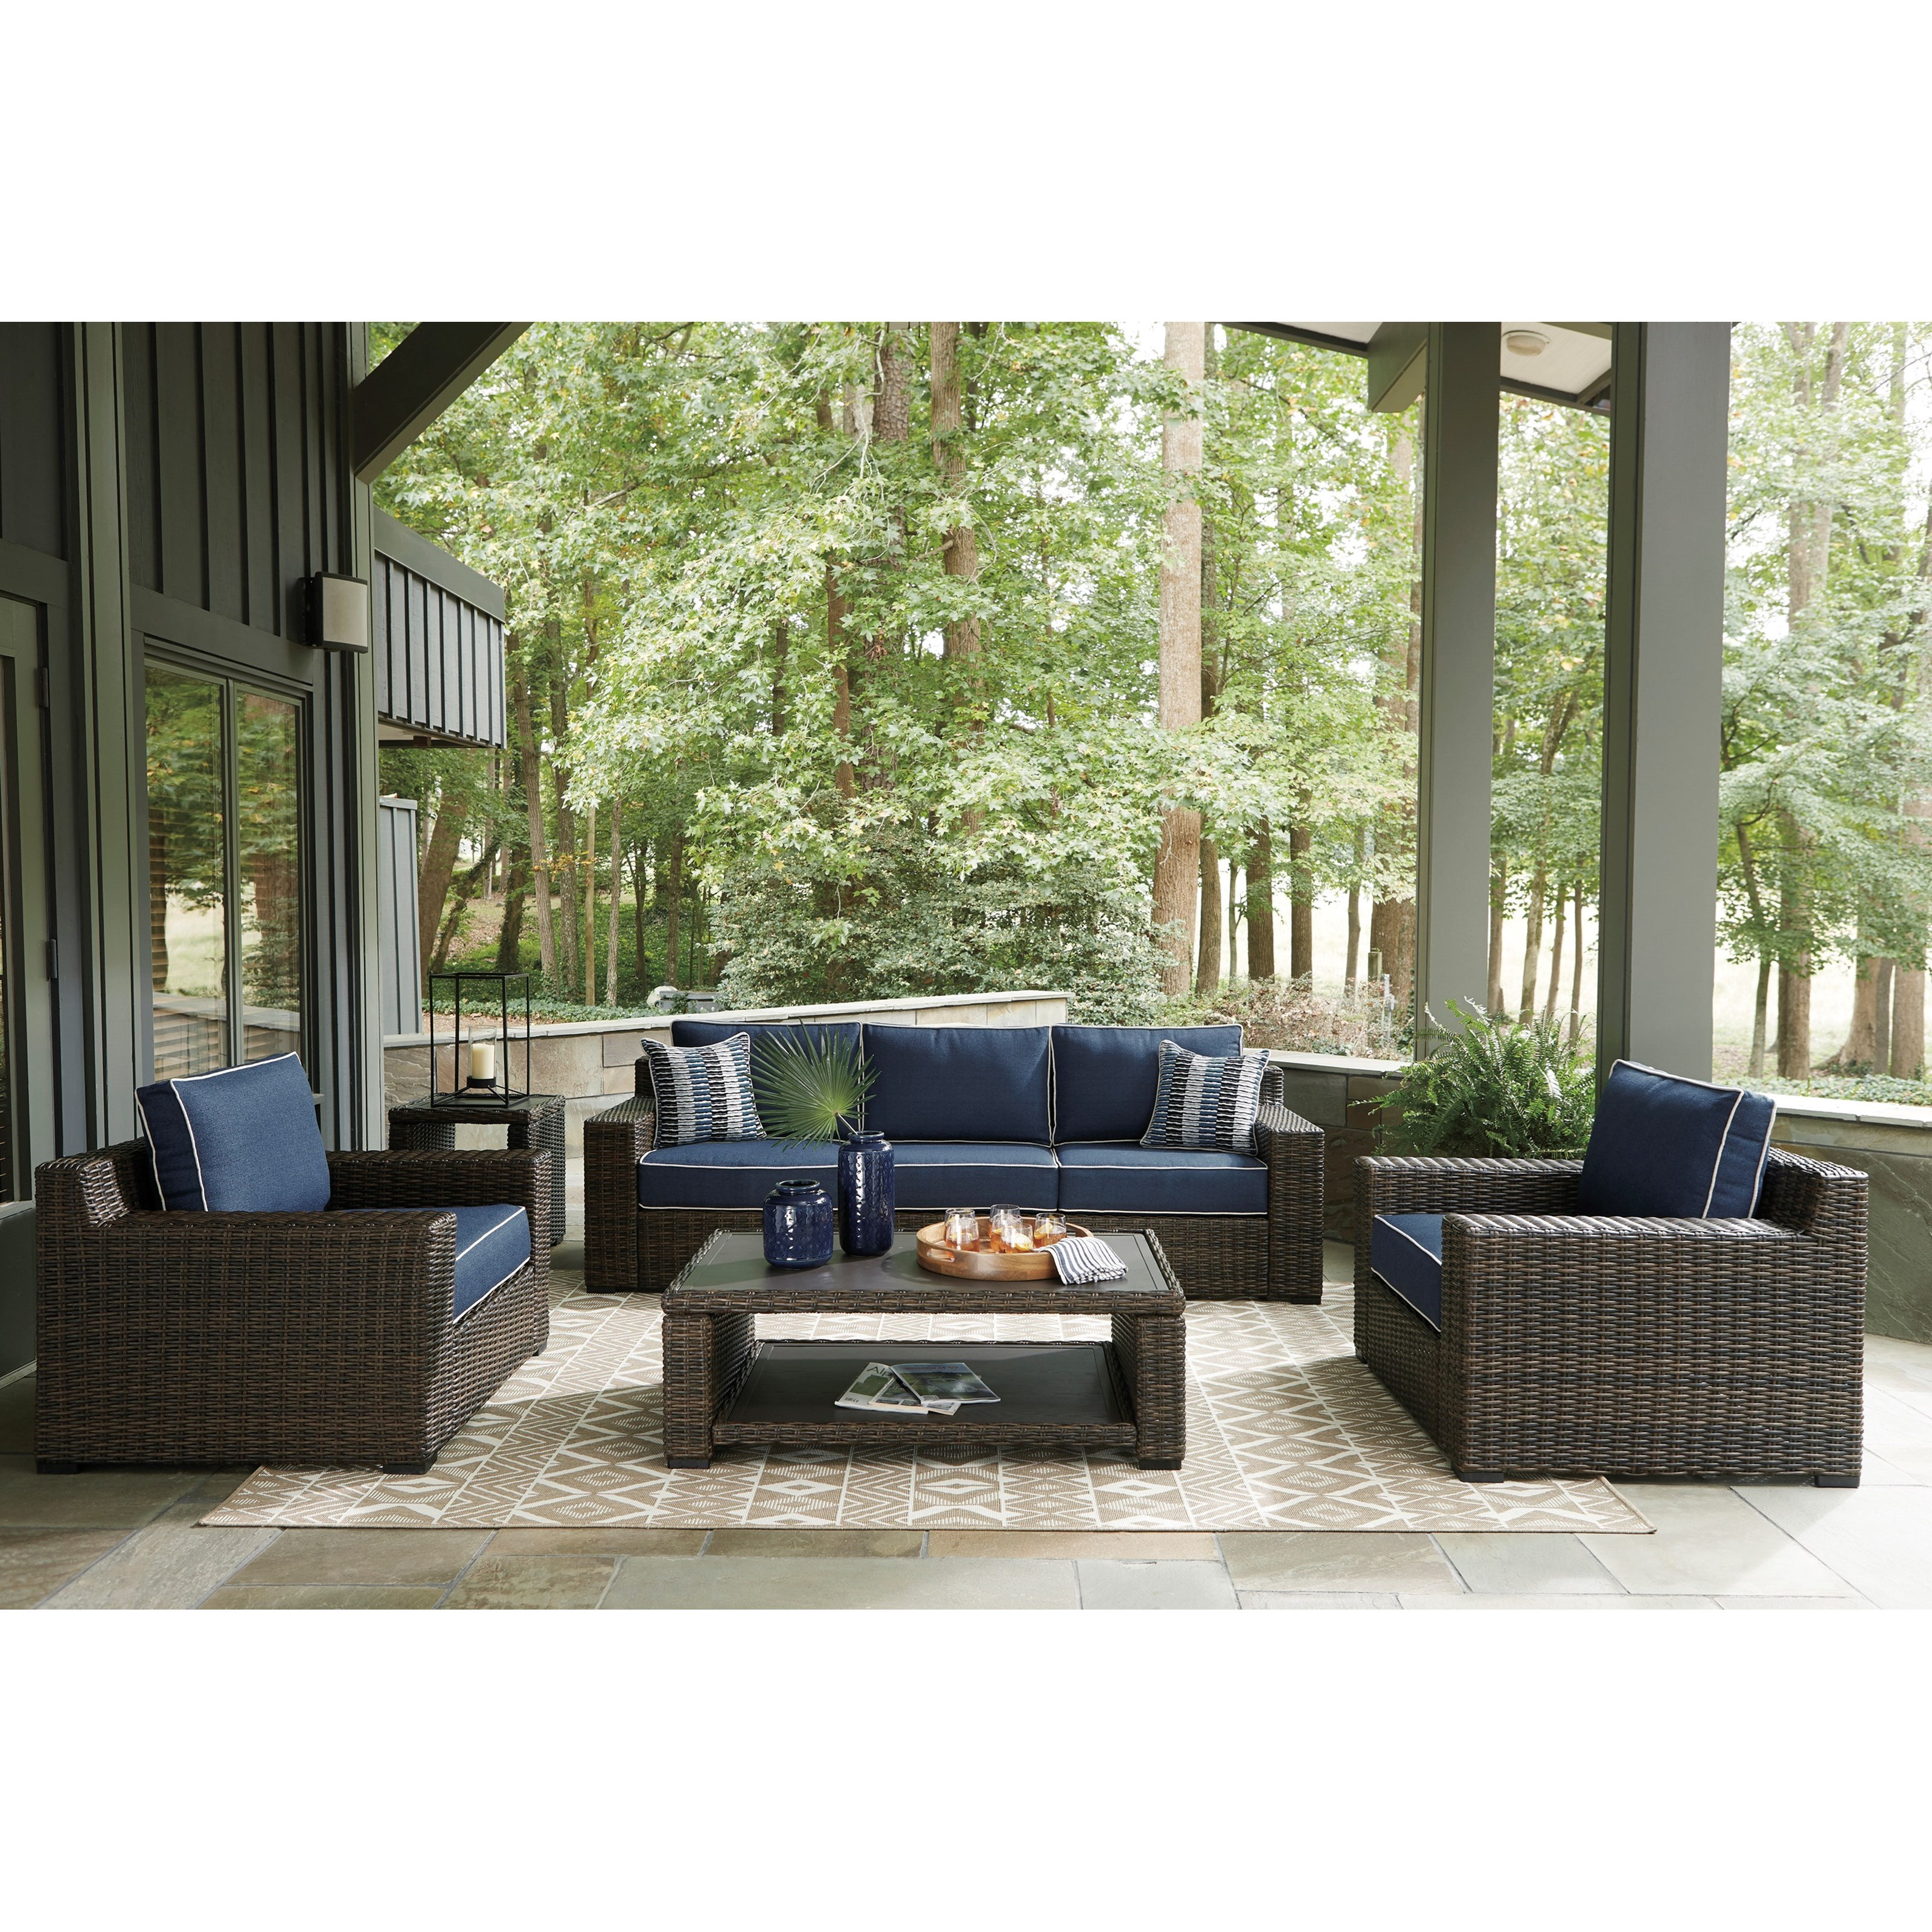 Grasson Lane Outdoor Conversation Set by Signature Design by Ashley at Northeast Factory Direct